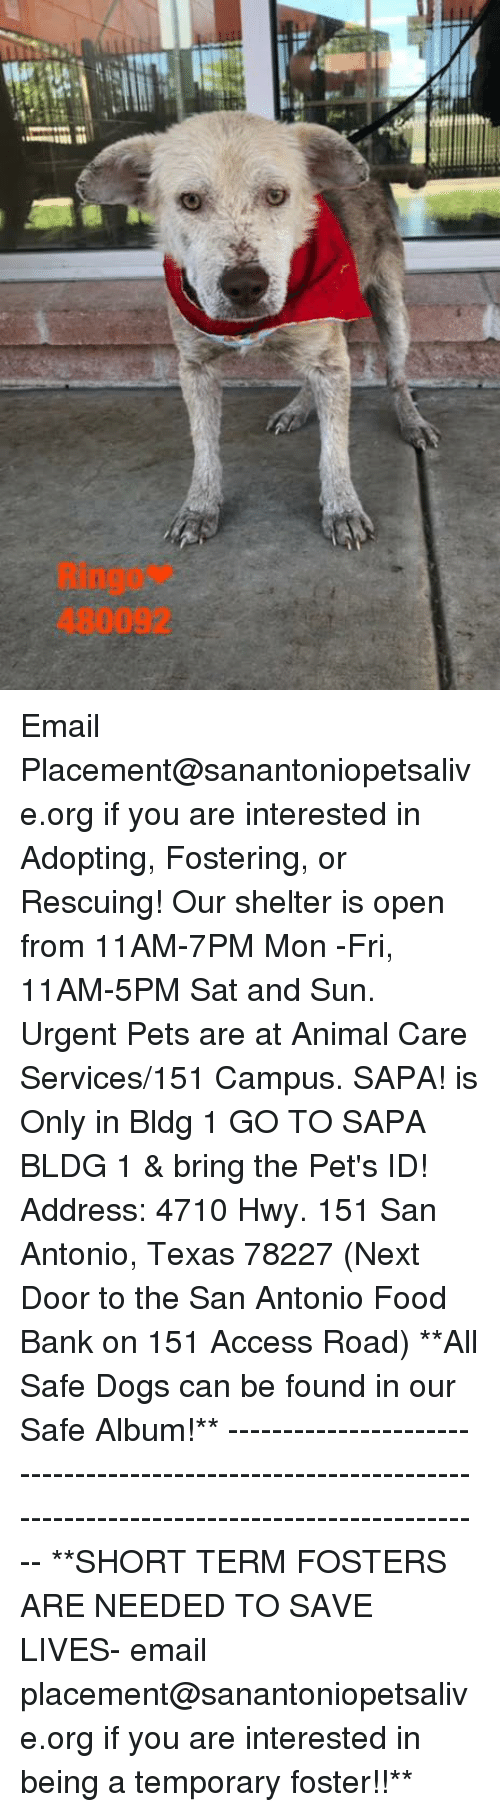 fosters: Ringo*  480092 Email Placement@sanantoniopetsalive.org if you are interested in Adopting, Fostering, or Rescuing!  Our shelter is open from 11AM-7PM Mon -Fri, 11AM-5PM Sat and Sun.  Urgent Pets are at Animal Care Services/151 Campus. SAPA! is Only in Bldg 1 GO TO SAPA BLDG 1 & bring the Pet's ID! Address: 4710 Hwy. 151 San Antonio, Texas 78227 (Next Door to the San Antonio Food Bank on 151 Access Road)  **All Safe Dogs can be found in our Safe Album!** ---------------------------------------------------------------------------------------------------------- **SHORT TERM FOSTERS ARE NEEDED TO SAVE LIVES- email placement@sanantoniopetsalive.org if you are interested in being a temporary foster!!**